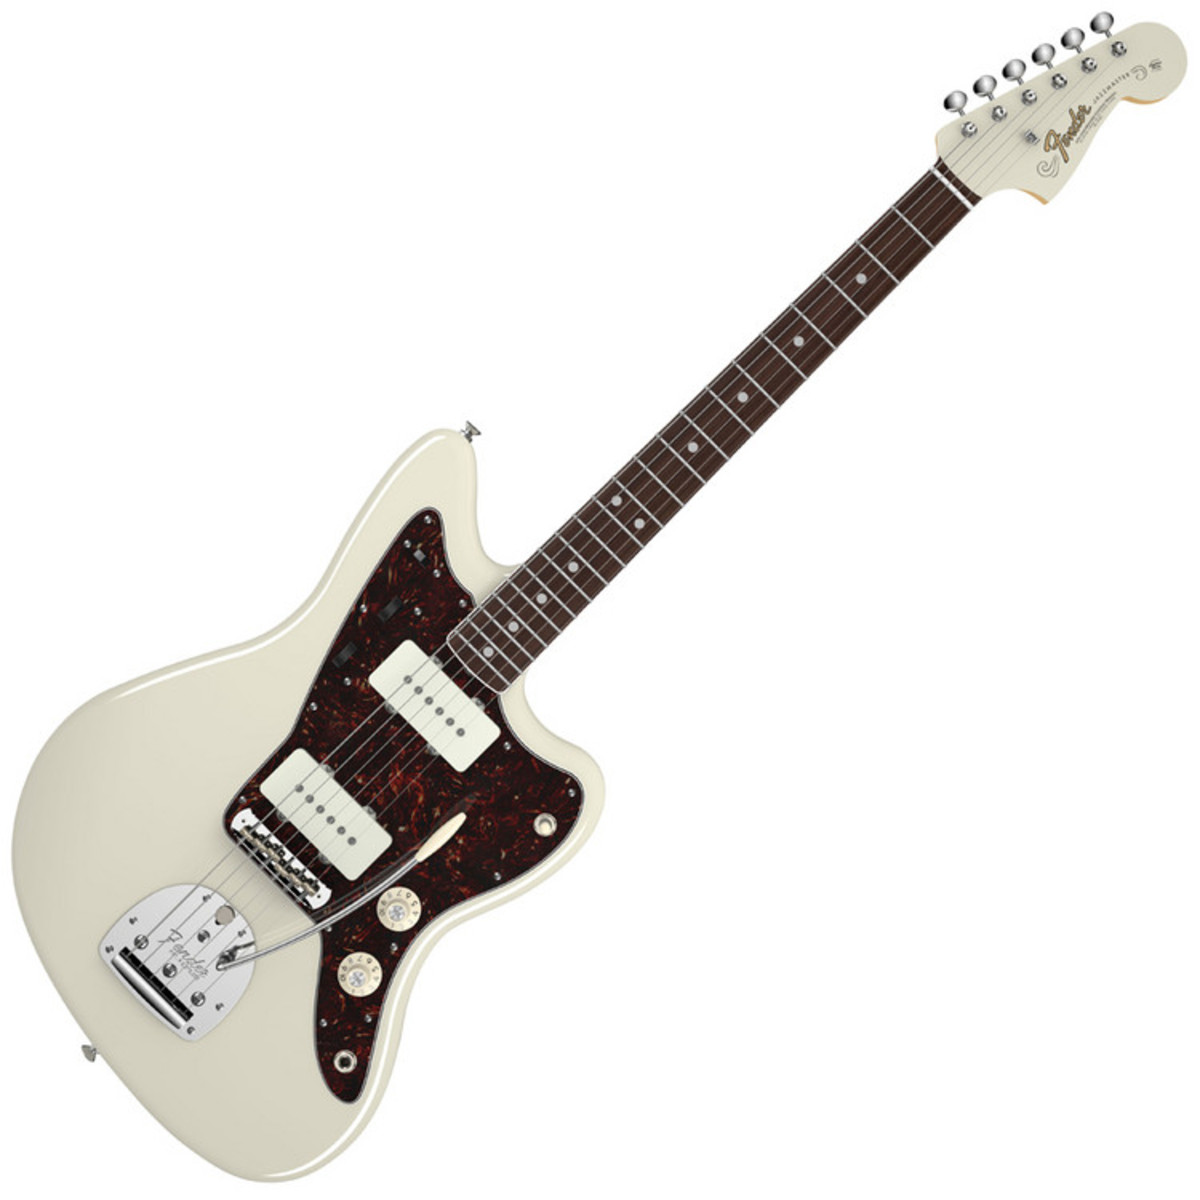 fender american vintage 65 jazzmaster electric guitar olympic white at. Black Bedroom Furniture Sets. Home Design Ideas